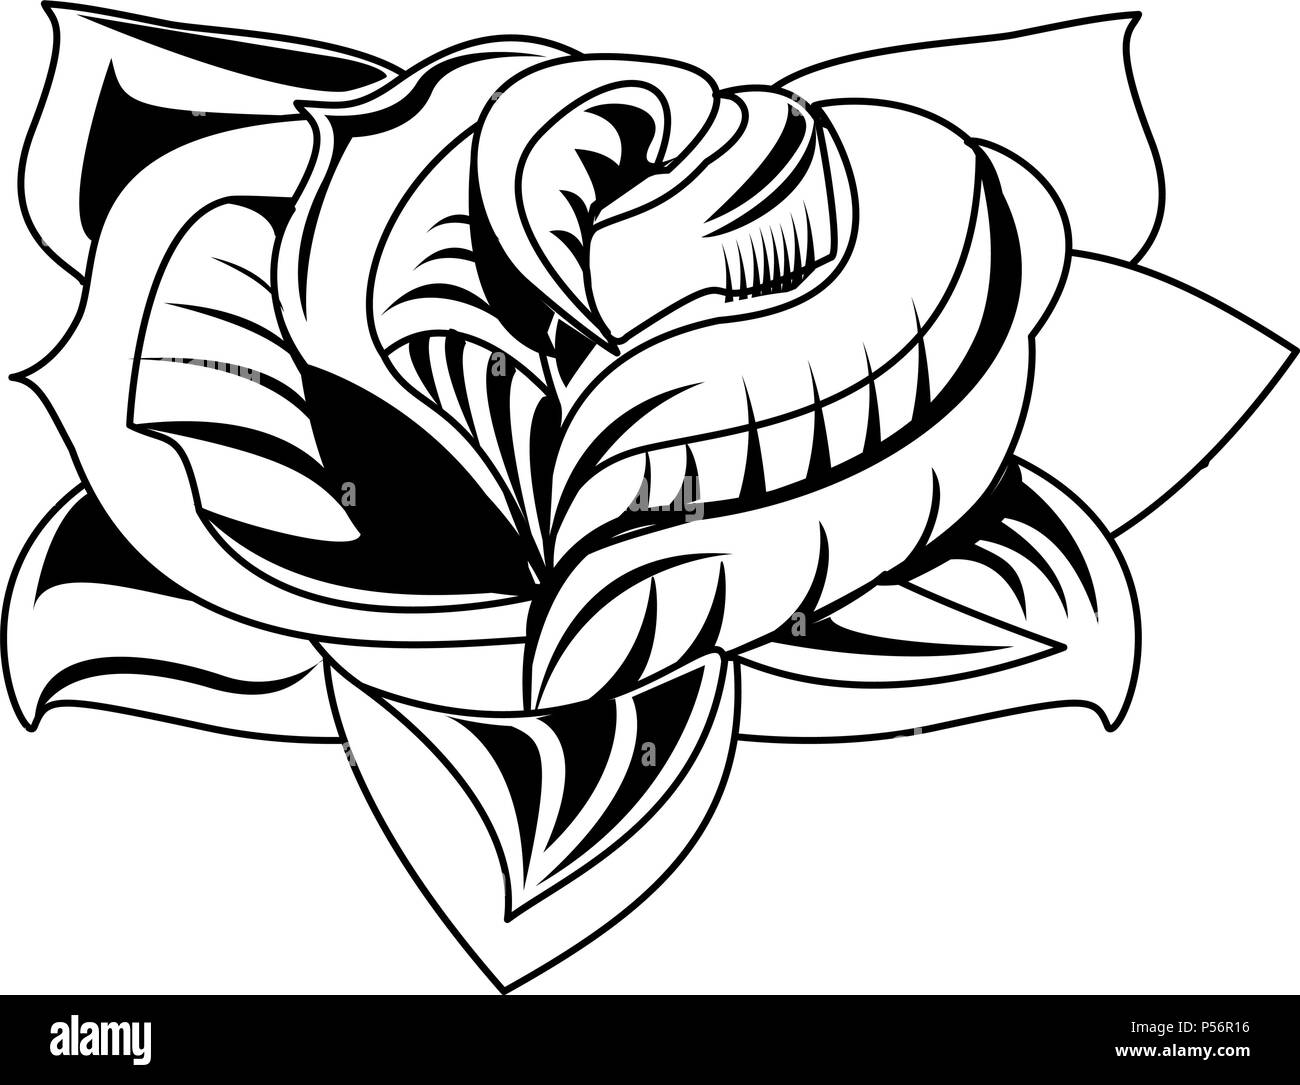 Old Tattoo Black And White Stock Photos Images Alamy